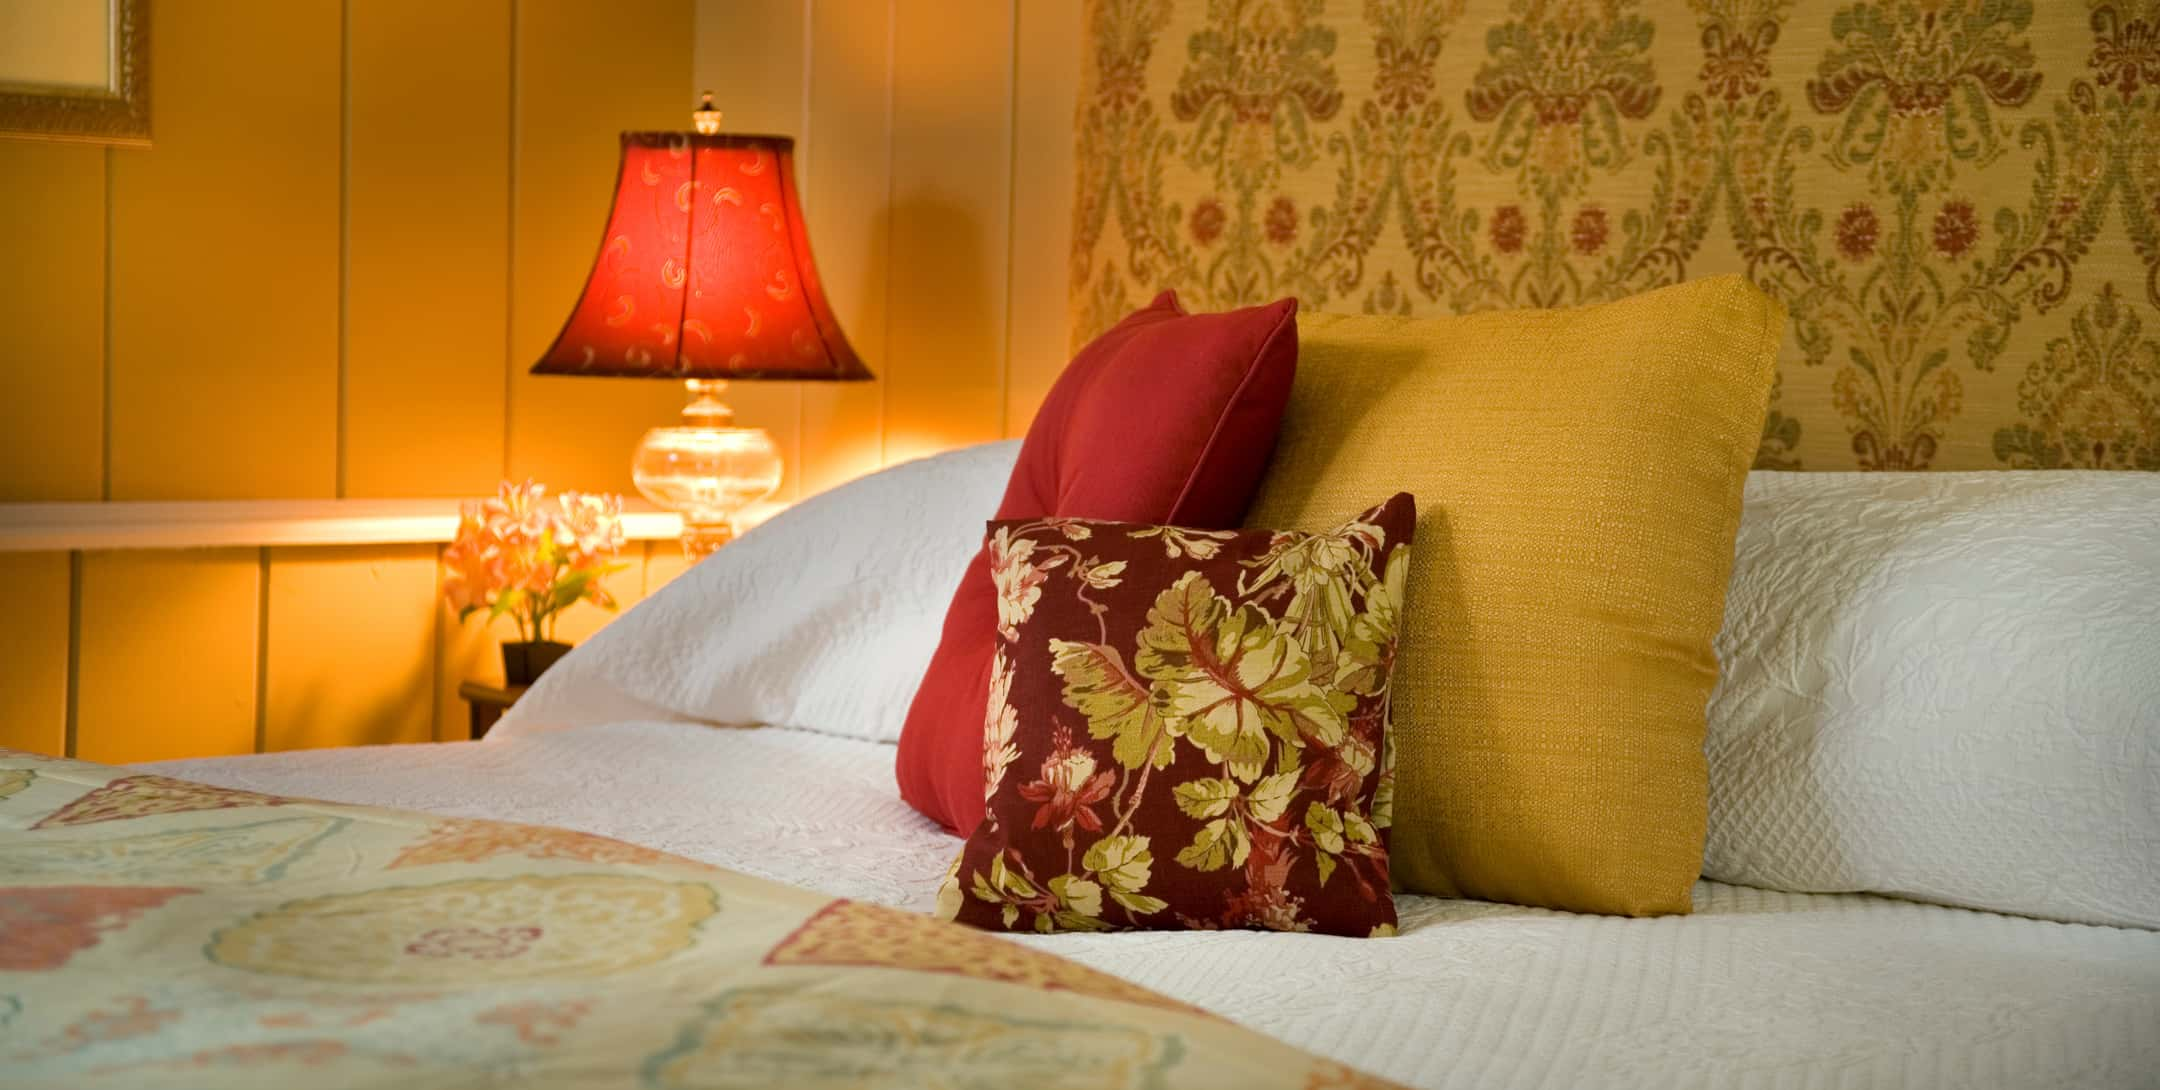 Poppy's Retreat - Romantic accommodations in Chestertown